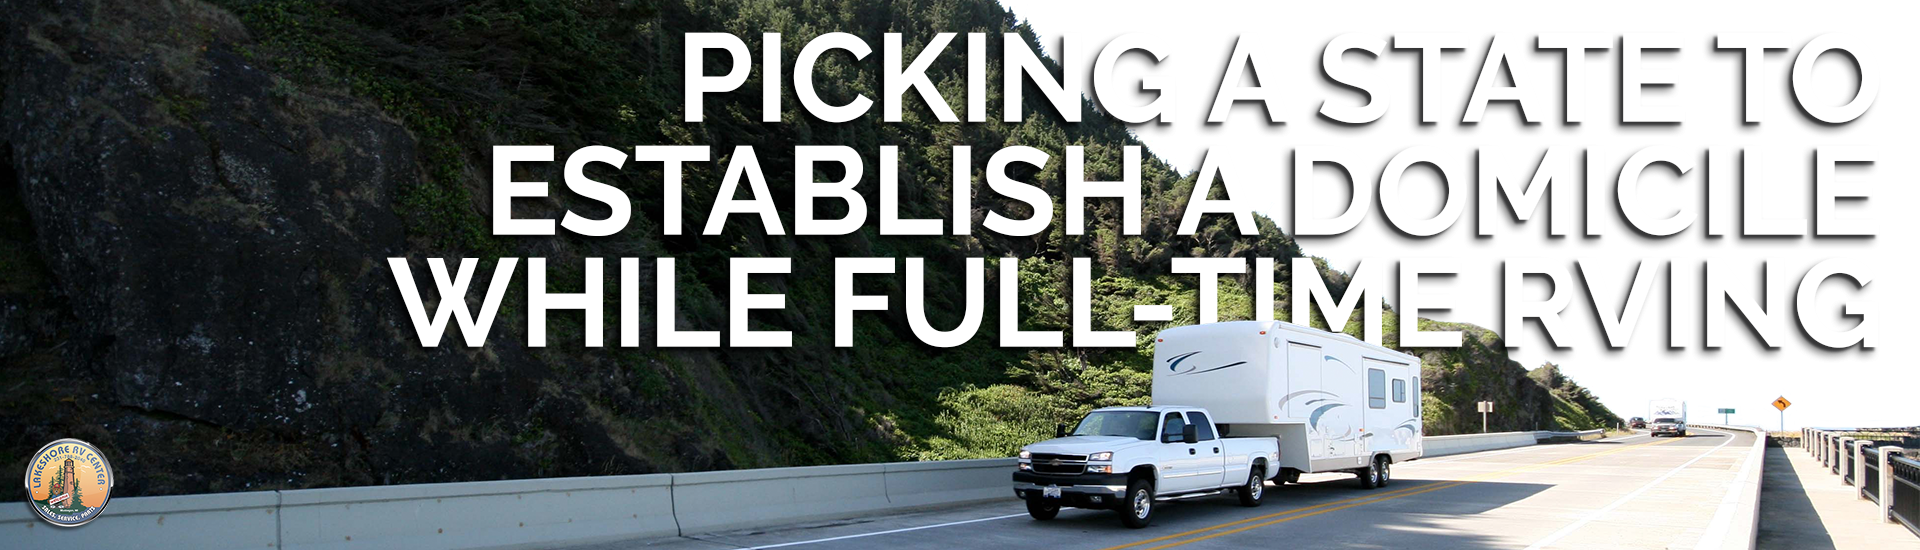 Picking a State To Establish a Domicile While Full-time RVing